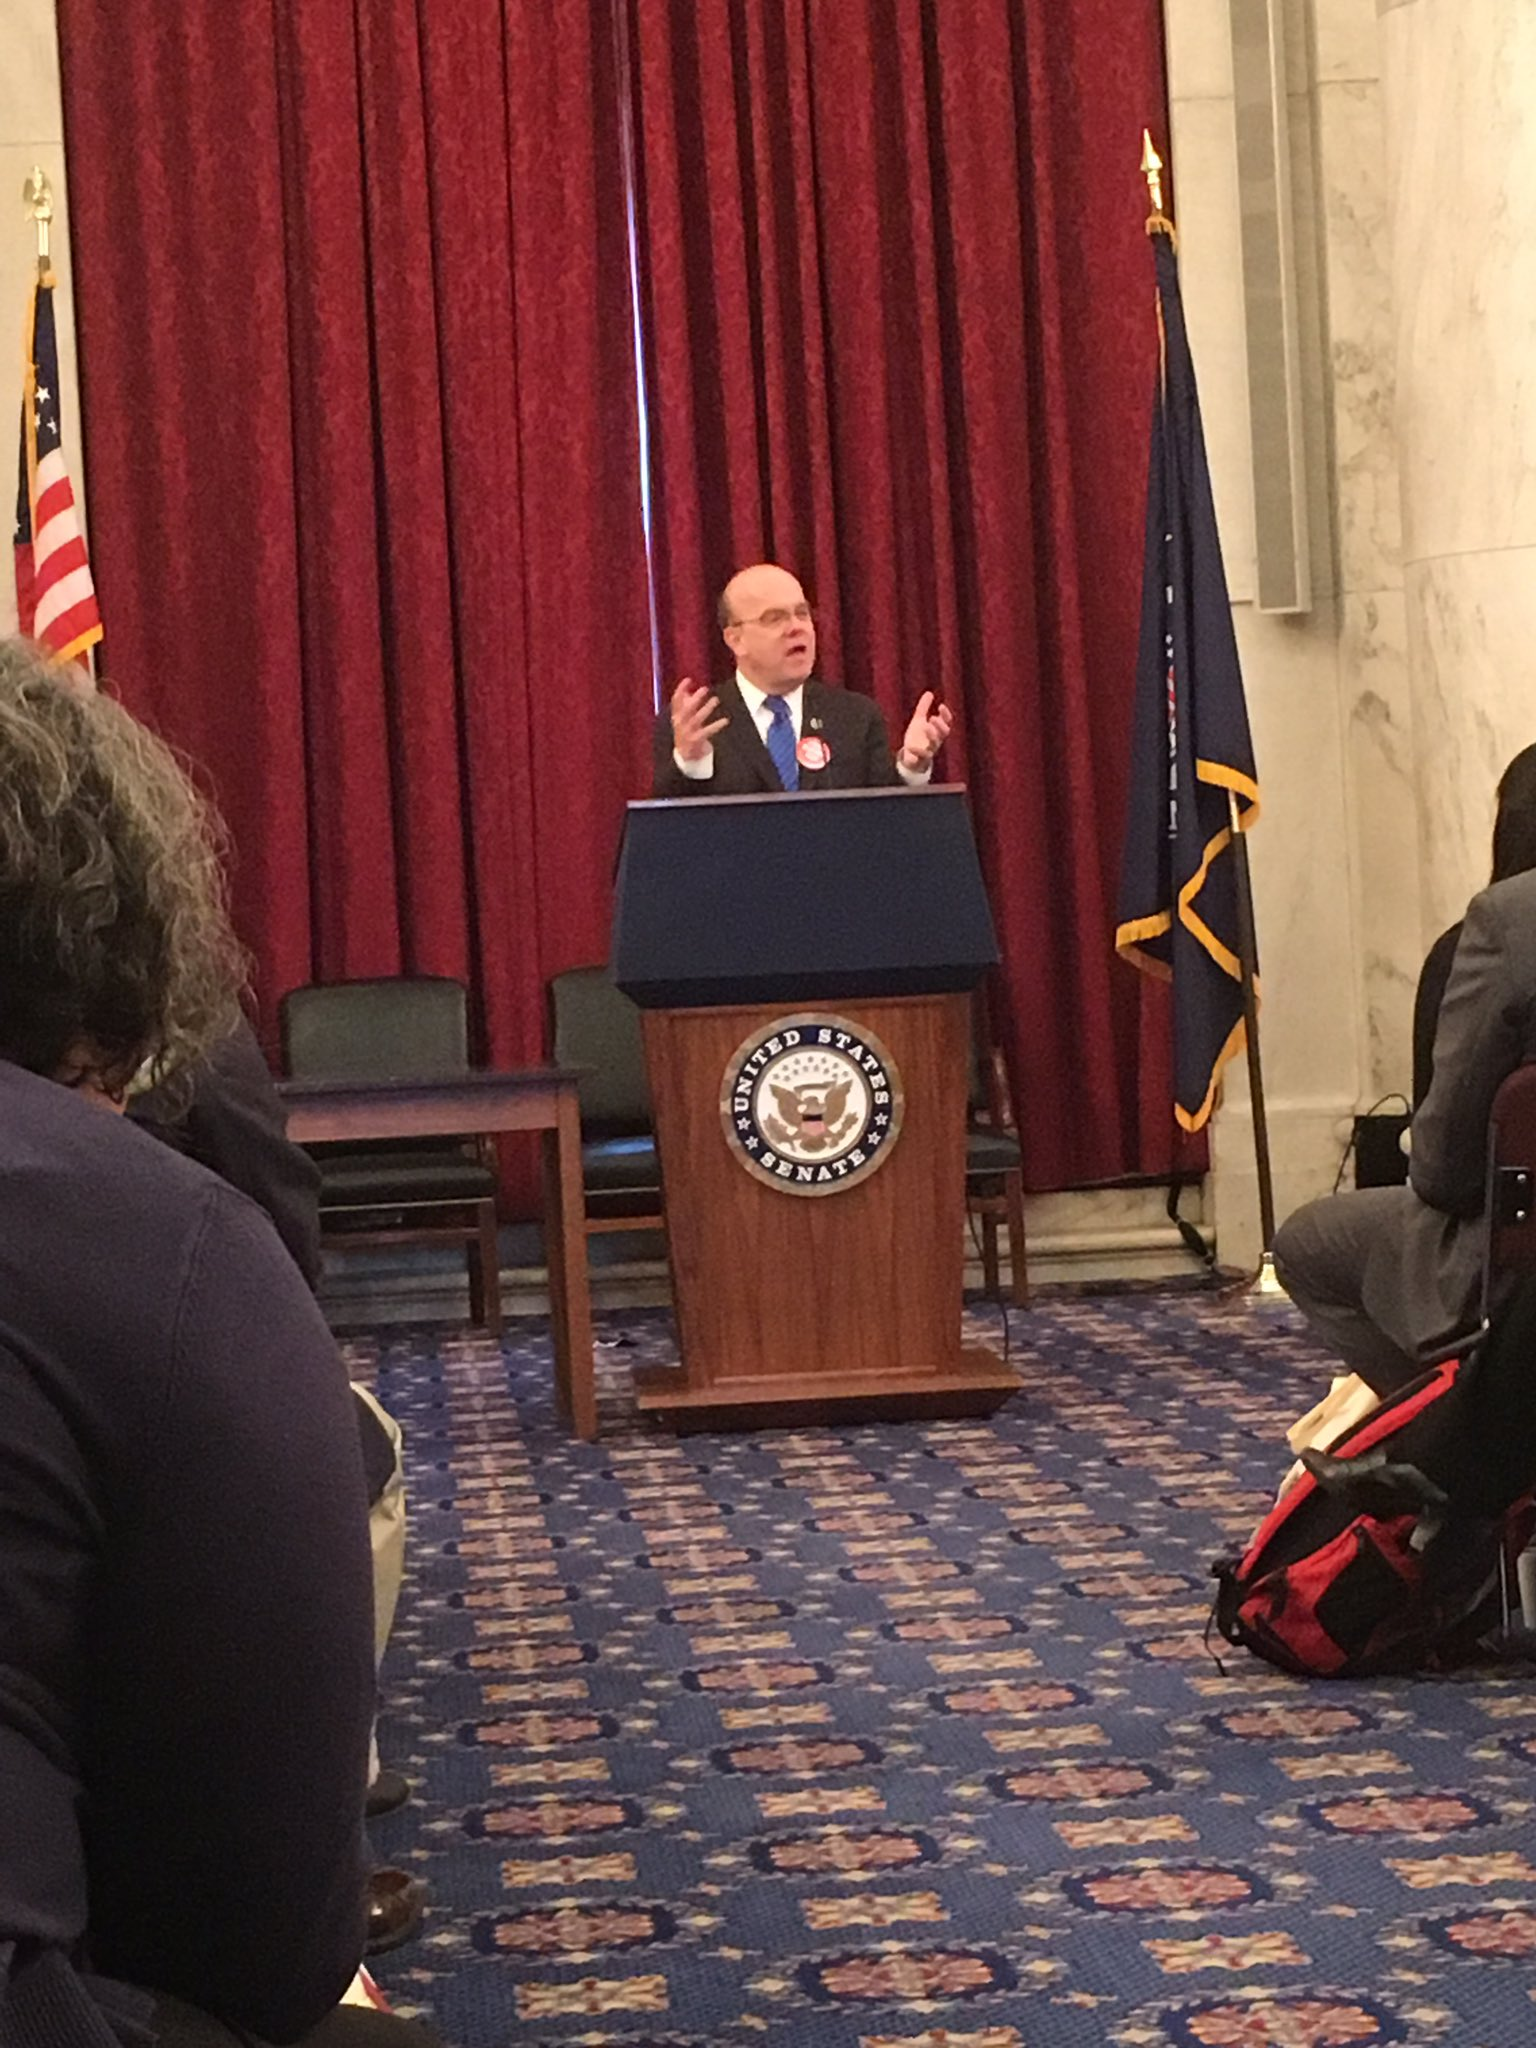 """""""No cuts to SNAP, no block grants, no structural changes. Don't mess with a program that works! @RepMcGovern advocates for SNAP #hungerpc17 https://t.co/zI6XHaRivS"""